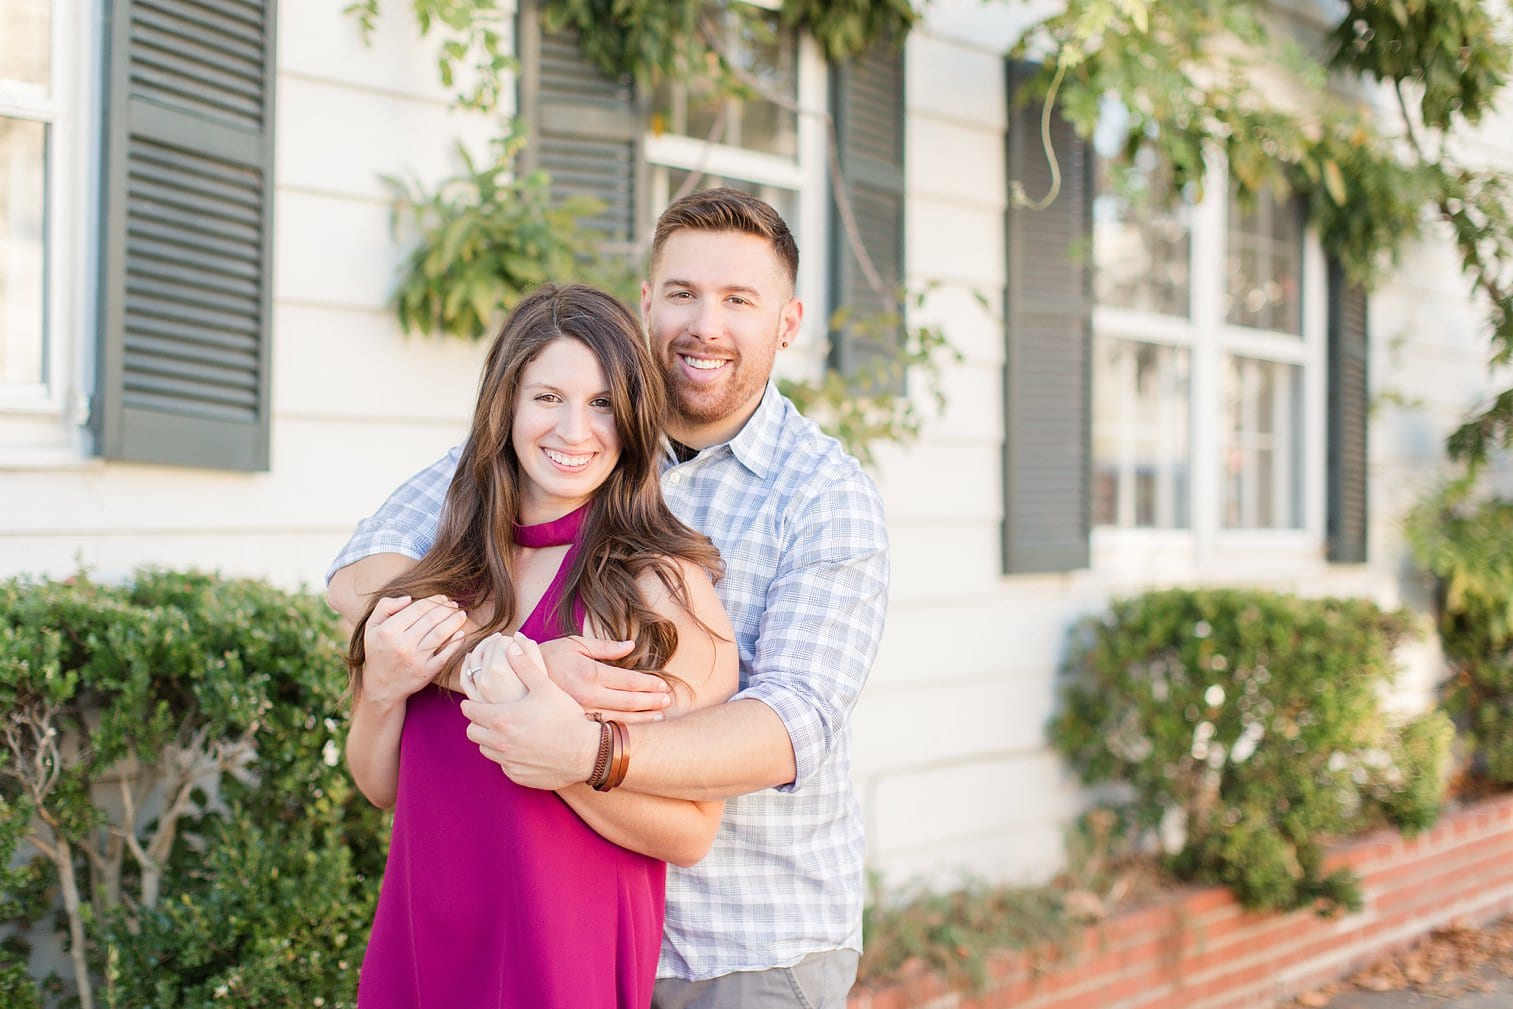 Fall Old Town Alexandria Engagement Photos Megan Kelsey Photography Virginia Wed-0026.jpg